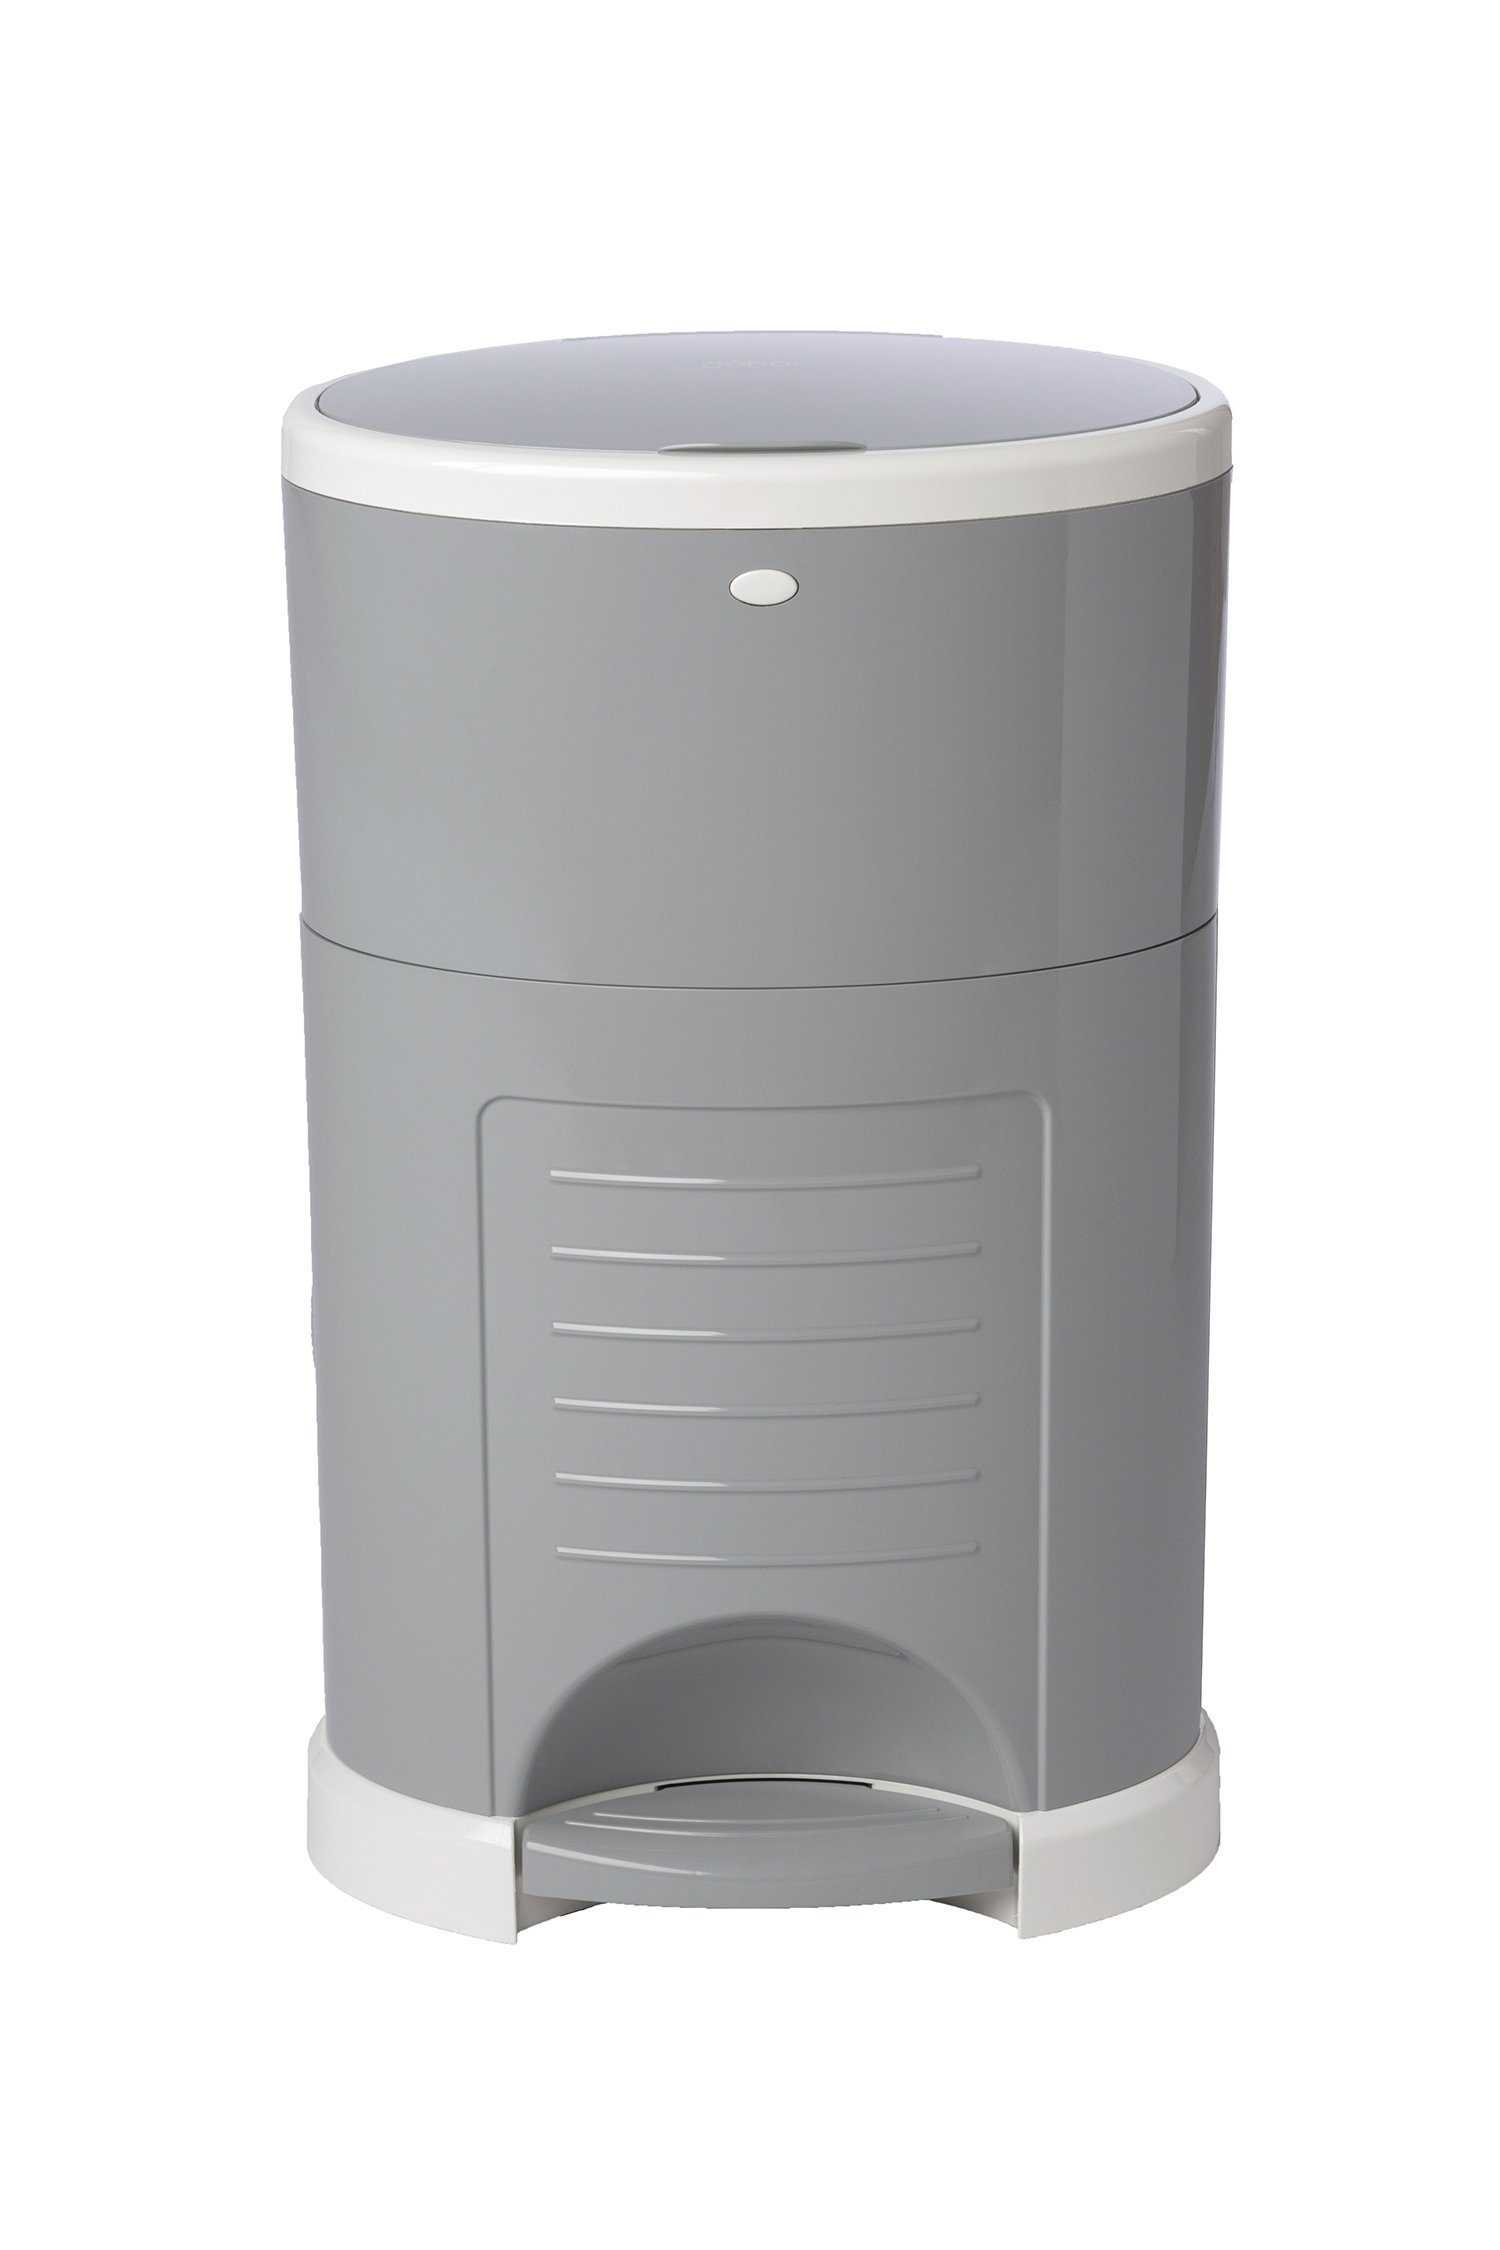 Dekor Classic Hands-Free Diaper Pail | Gray | Easiest to Use | Just Step - Drop - Done | Doesn't Absorb Odors | 20 Second Bag Change | Most Economical Refill System by DEKOR